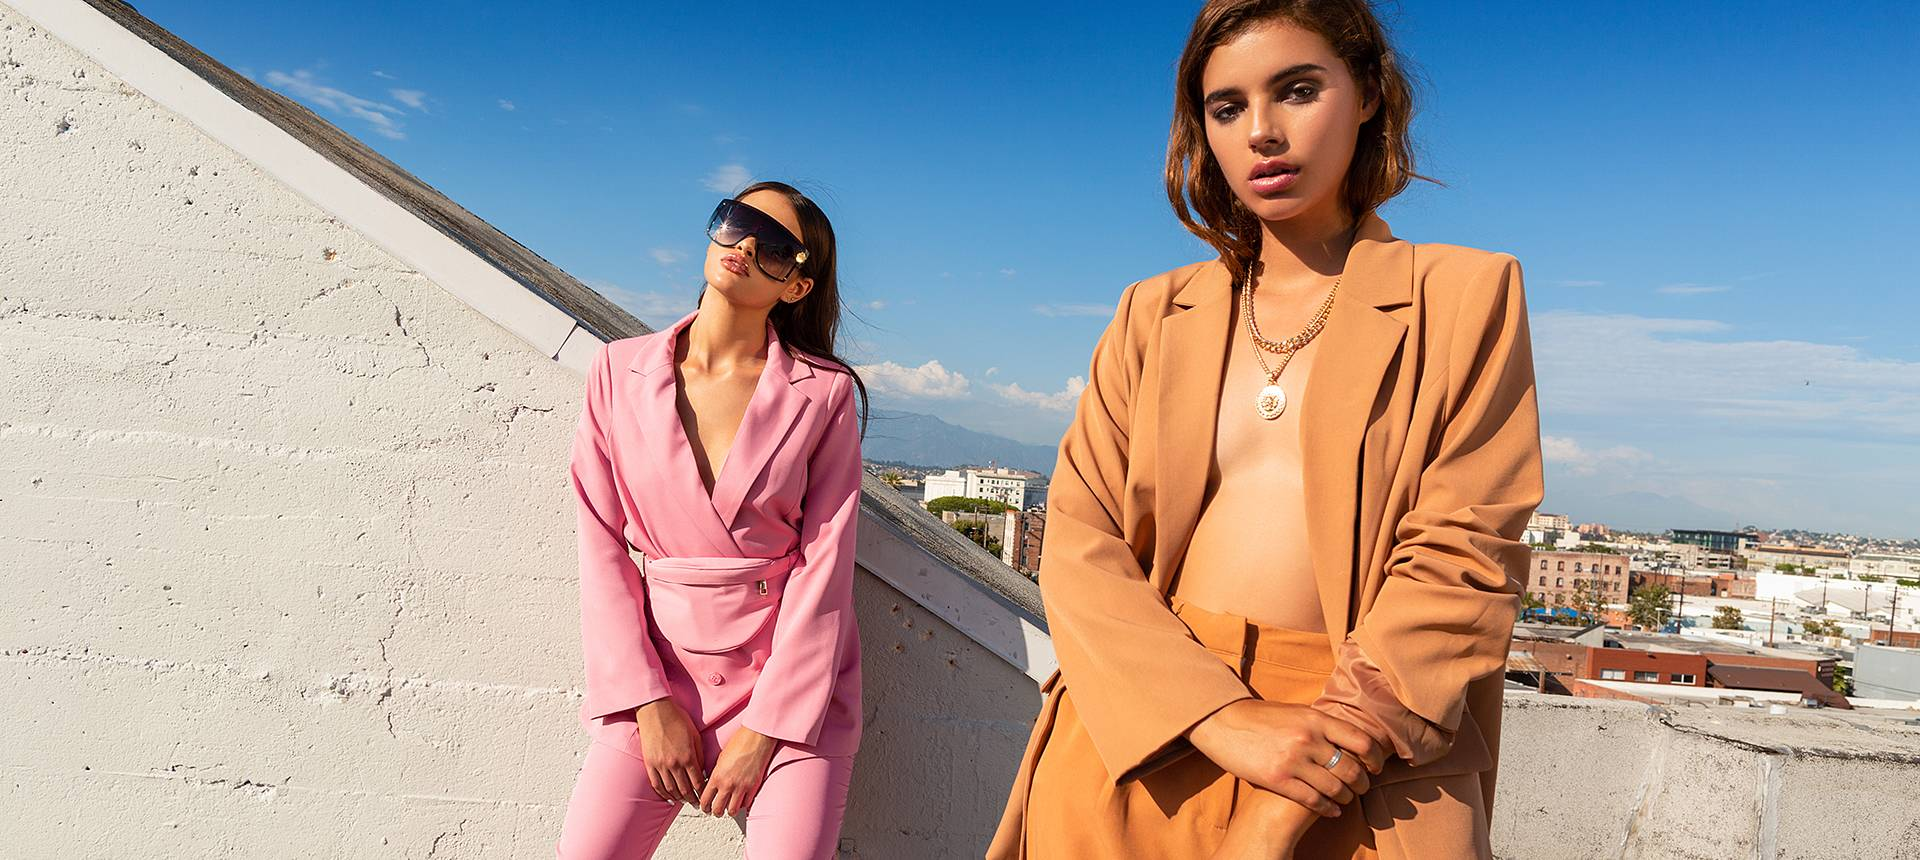 1eff866c6186a Women's Clothes | Fashion Shopping Online - Missguided